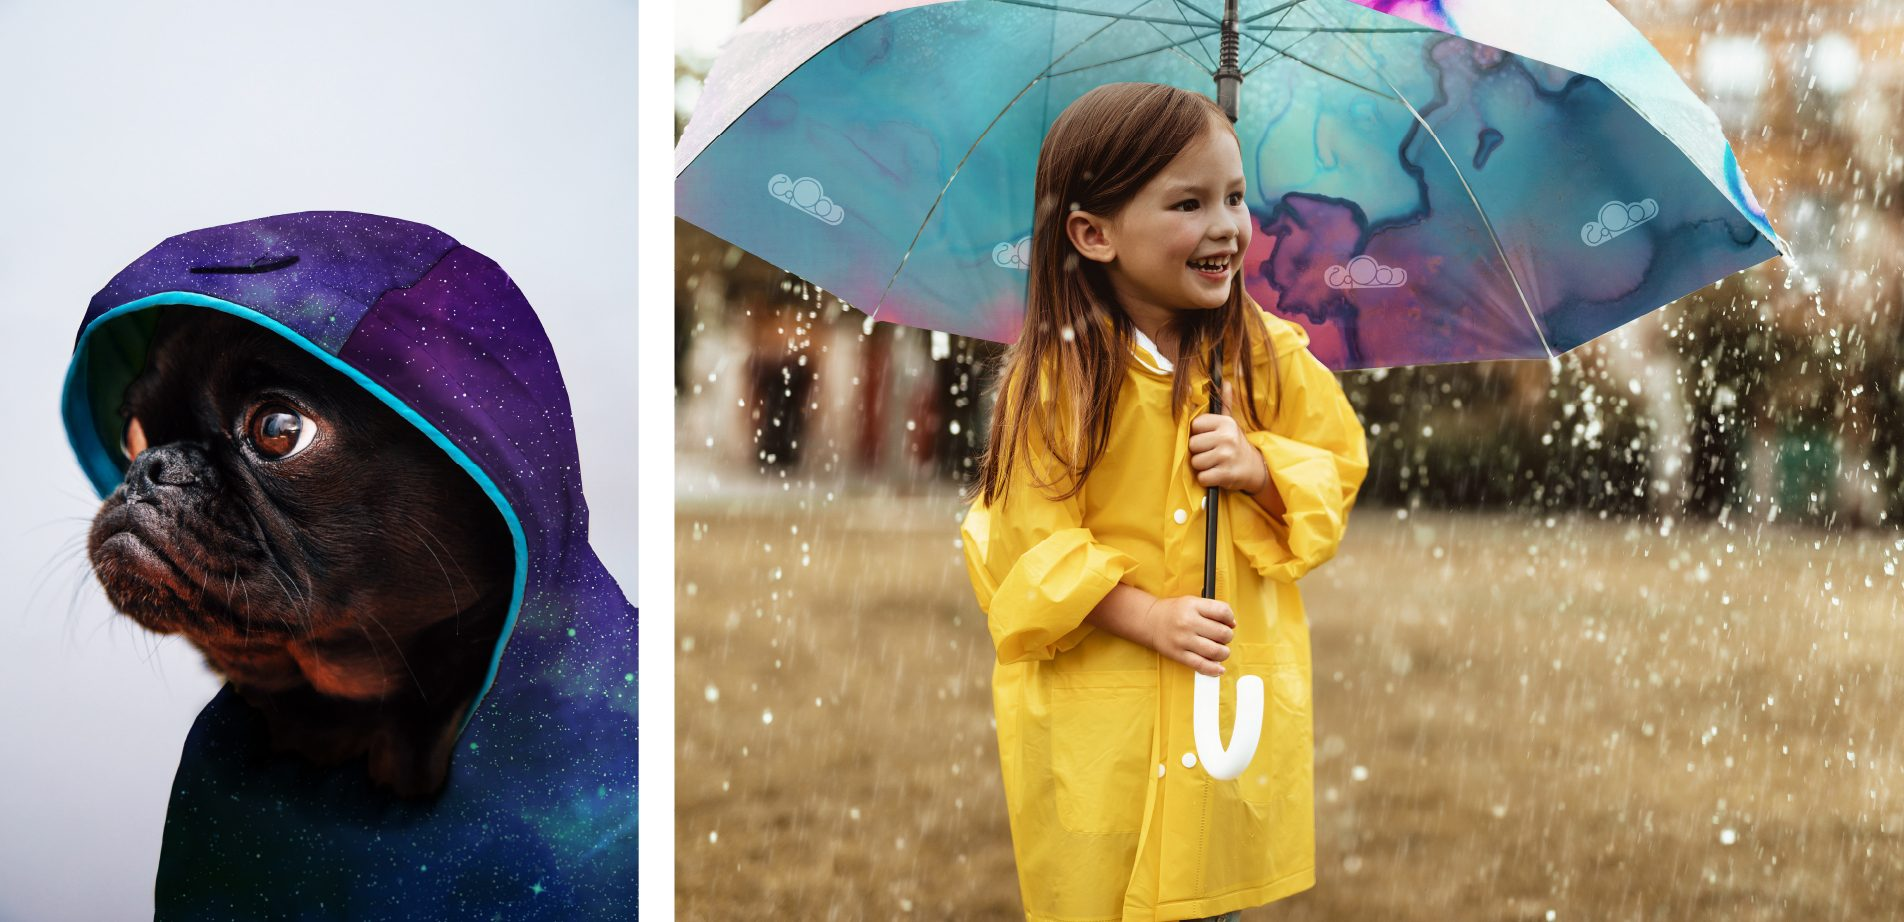 Loops adverts - A dog in a raincoat and a girl under an umbrella